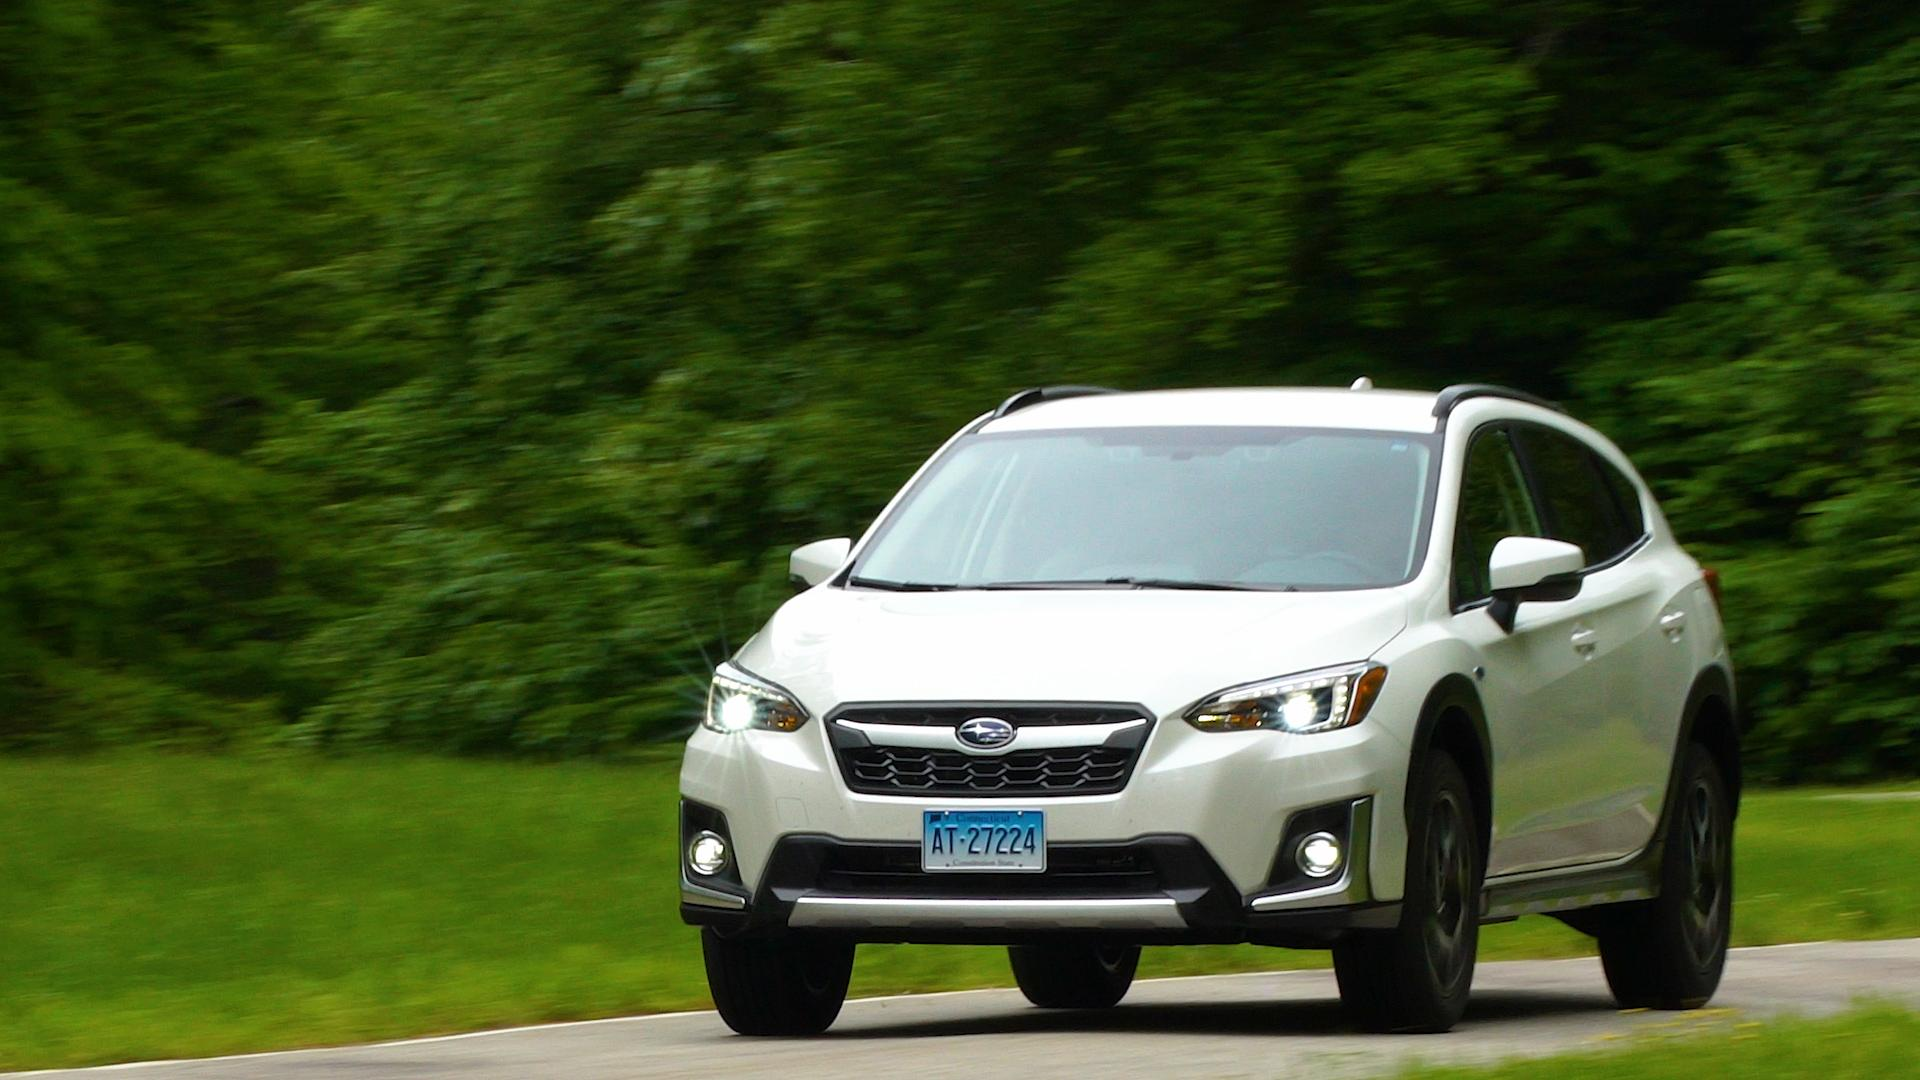 2016 Subaru Crosstrek Reviews, Ratings, Prices - Consumer